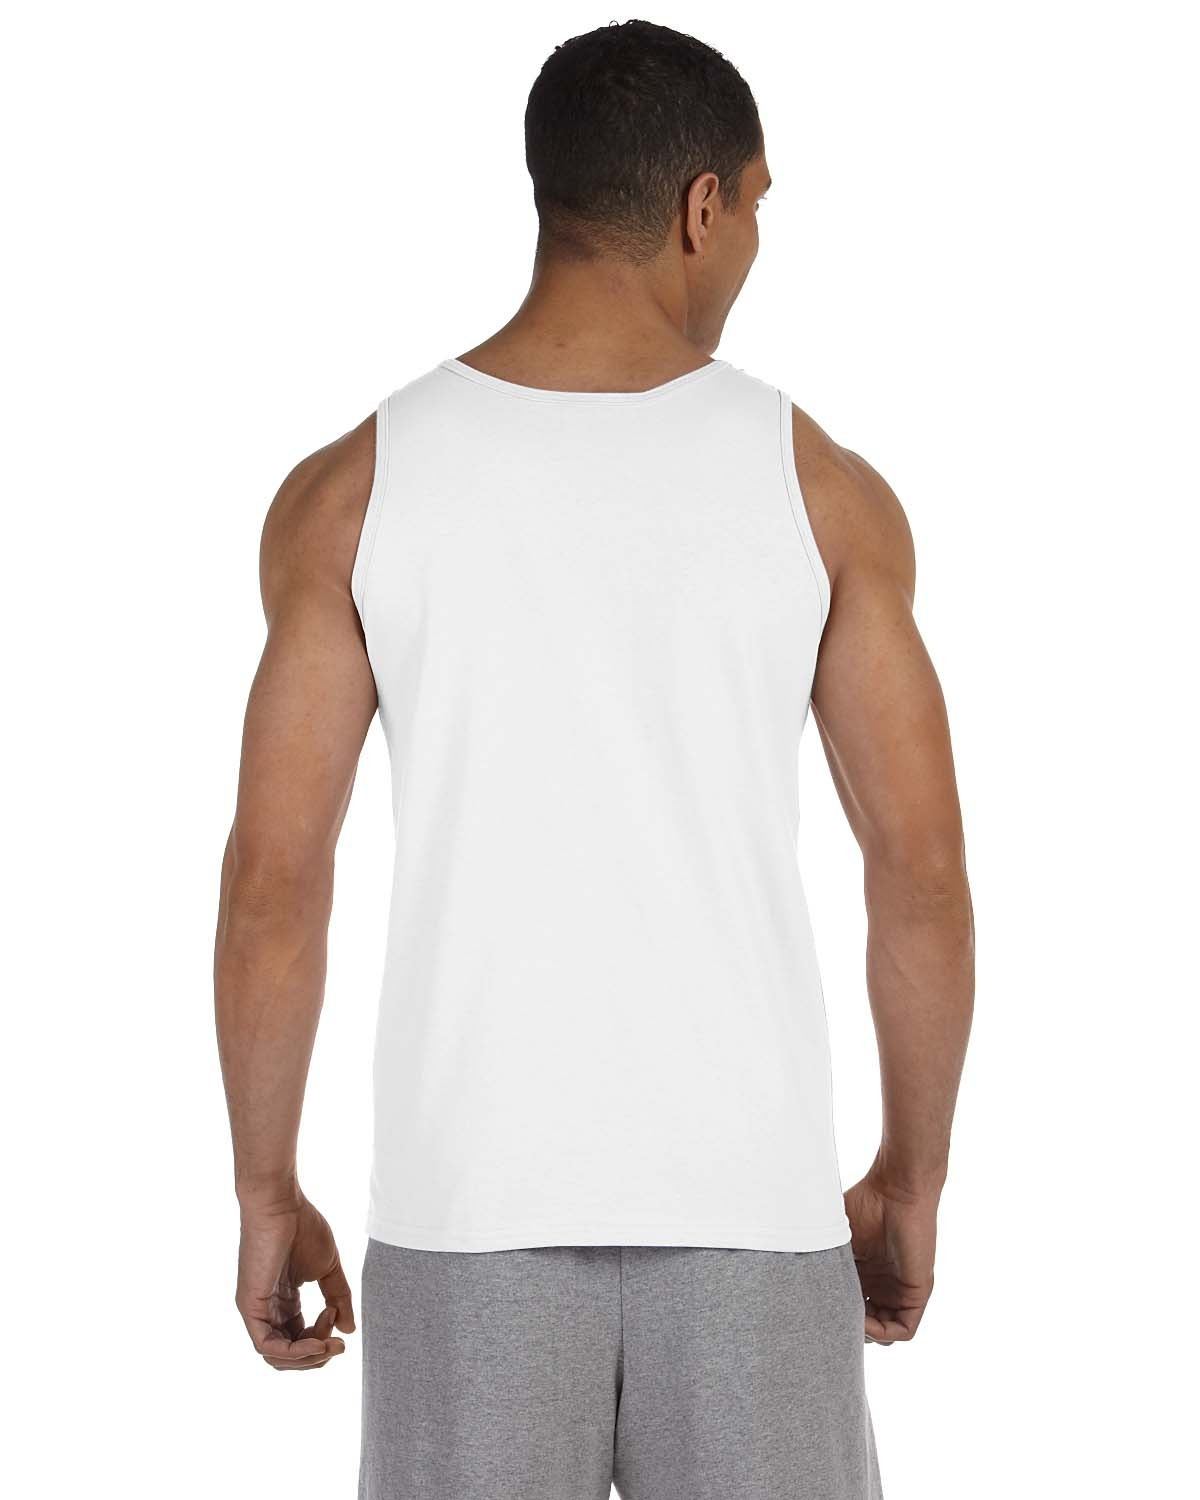 3 Men White Tank Top % Cotton A-Shirt Wife Beater Ribbed Undershirt Size S-8X See more like this PROCLUB BIG AND TALL MENS SLEEVELESS TANK TOP MUSCLE SHIRTS T SHIRTS TEE CASUAL Brand New.